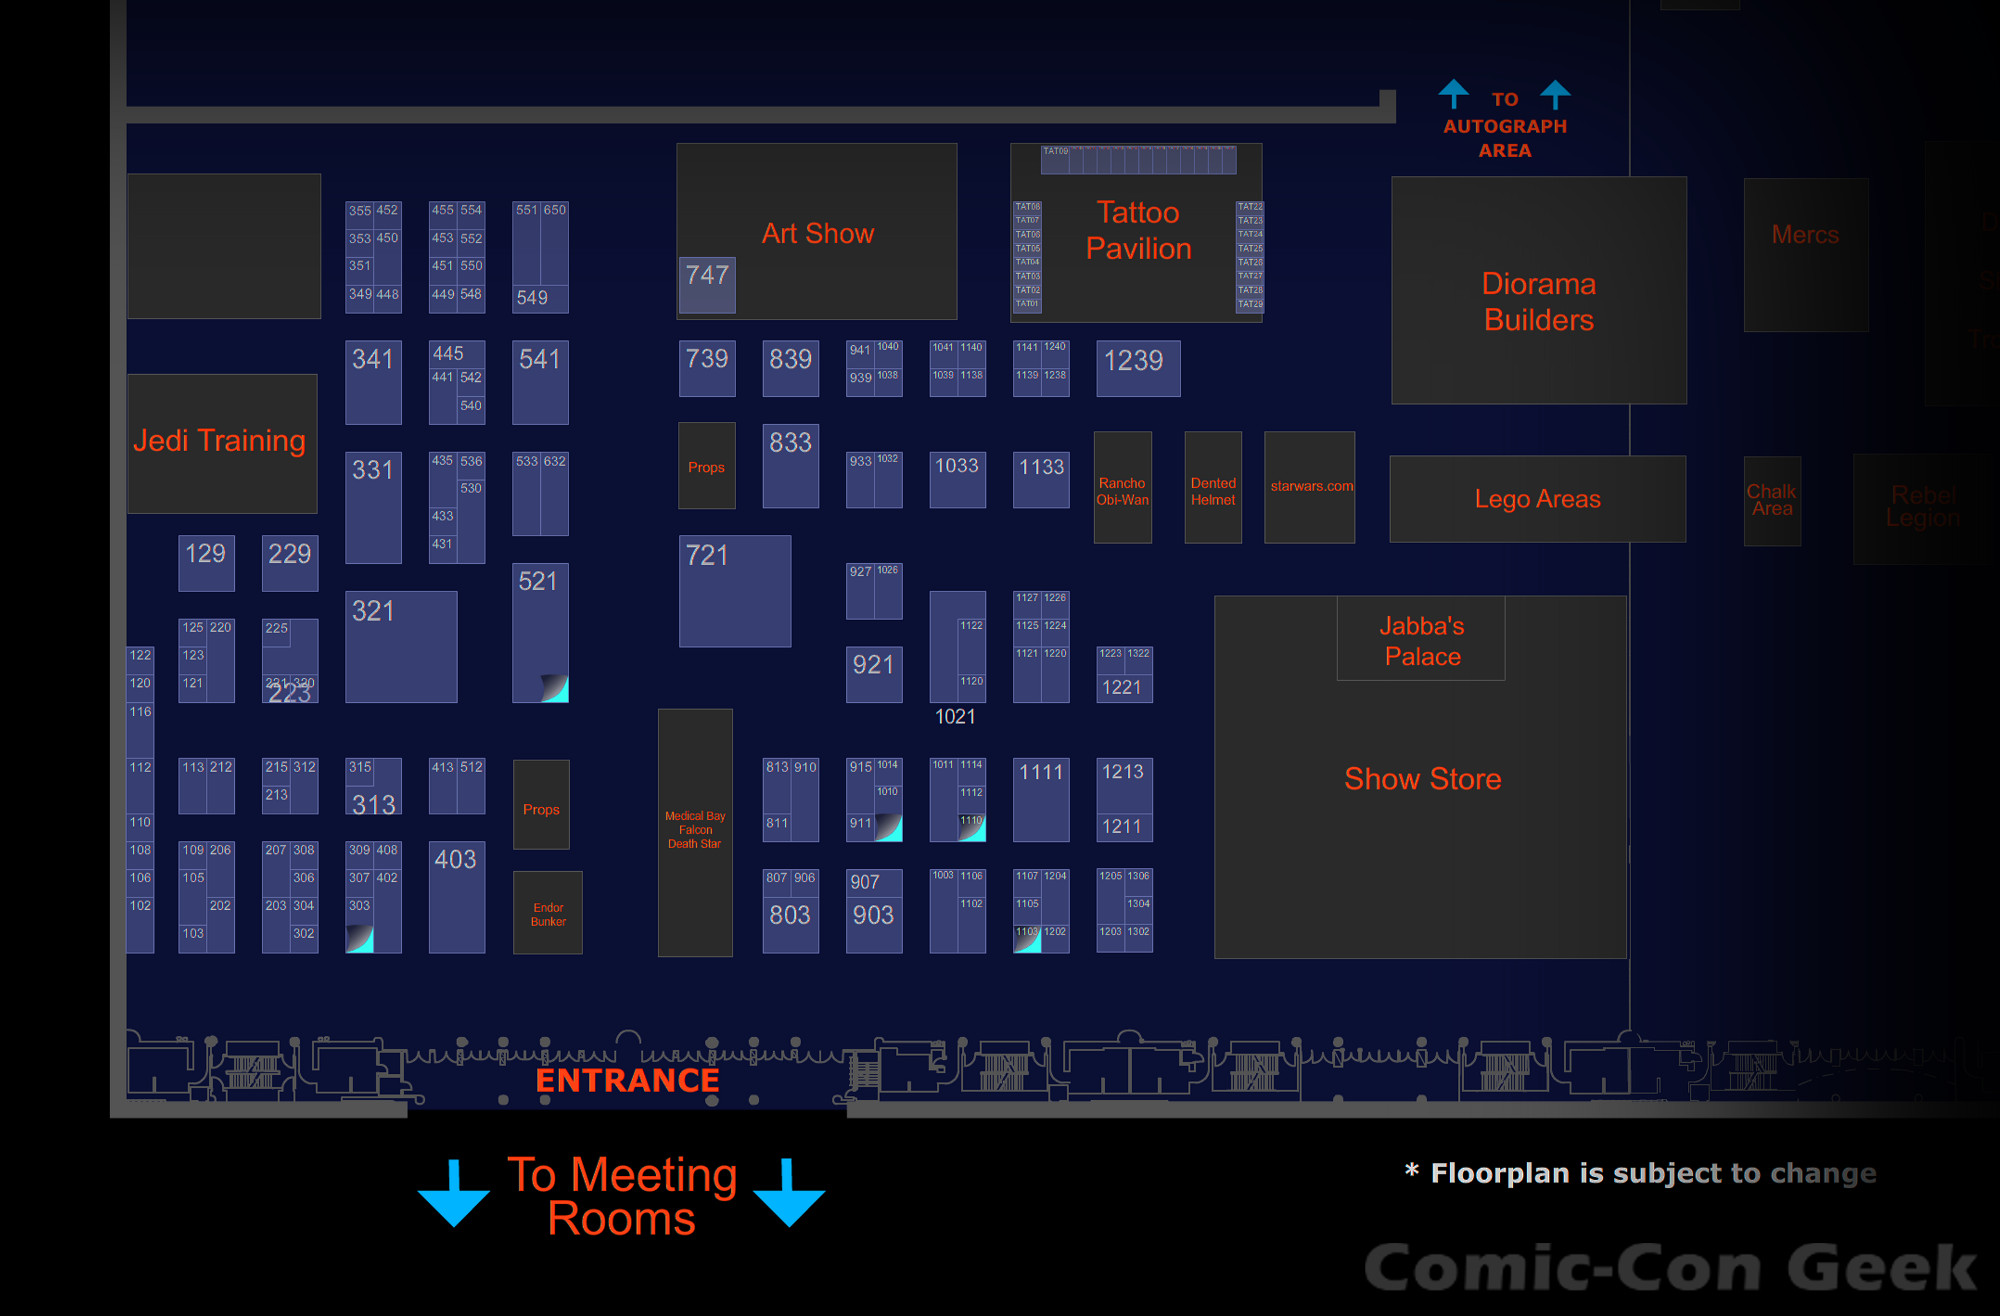 star wars celebration vi exhibitor list and floor plan